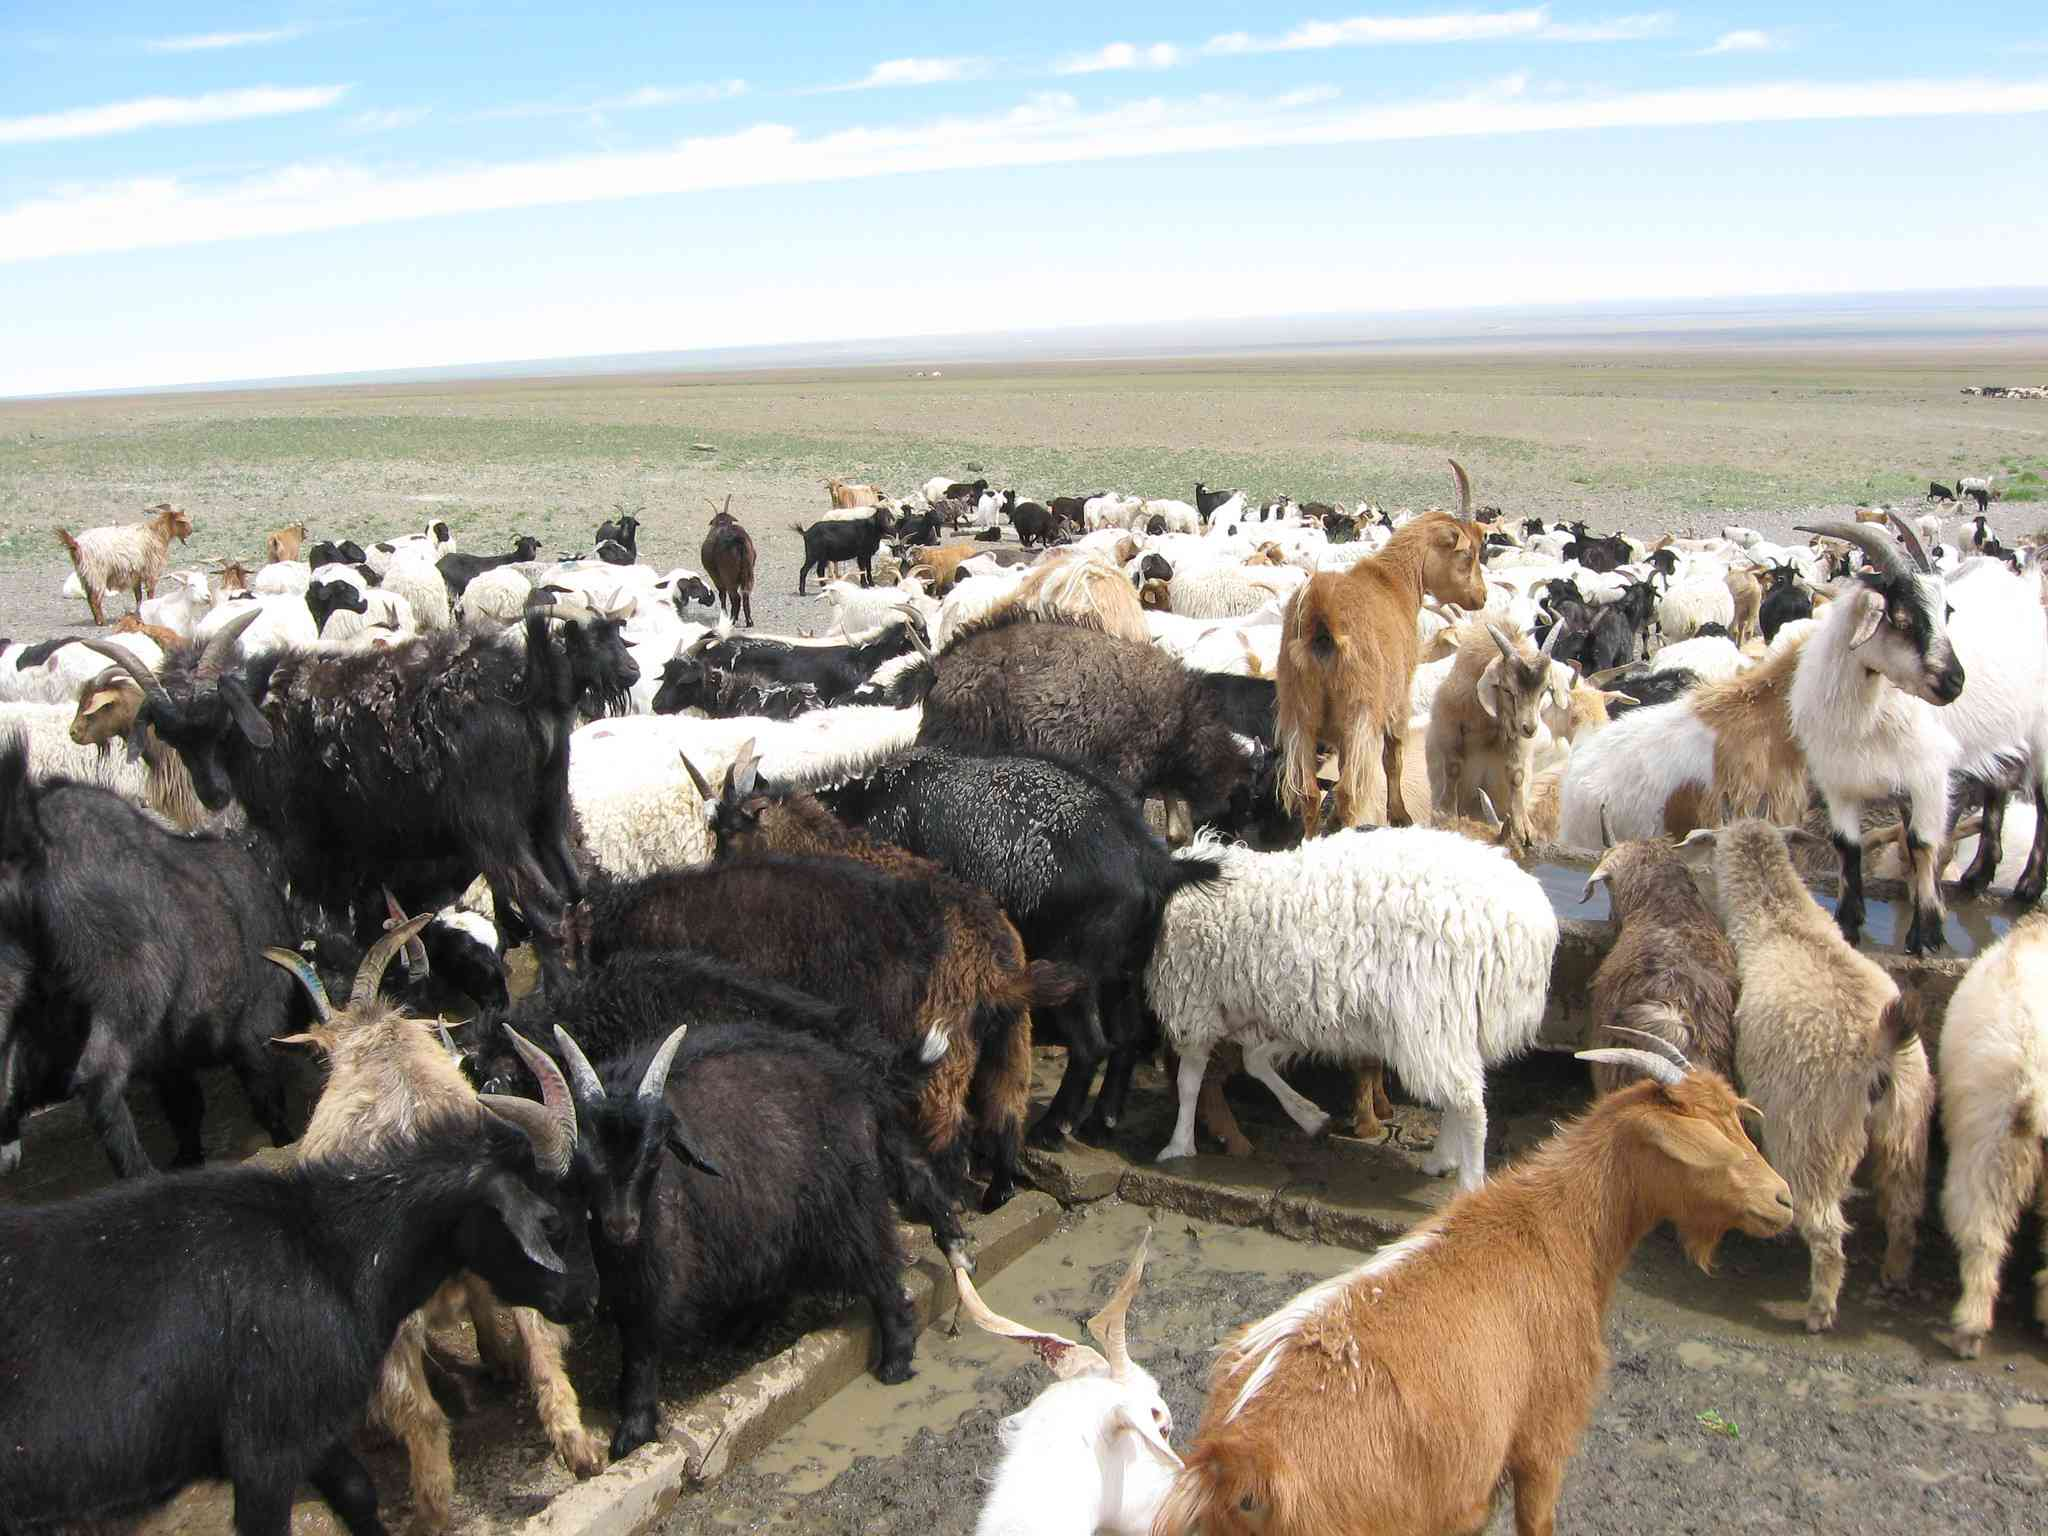 herd of goats of all colors on overgrazed pasture